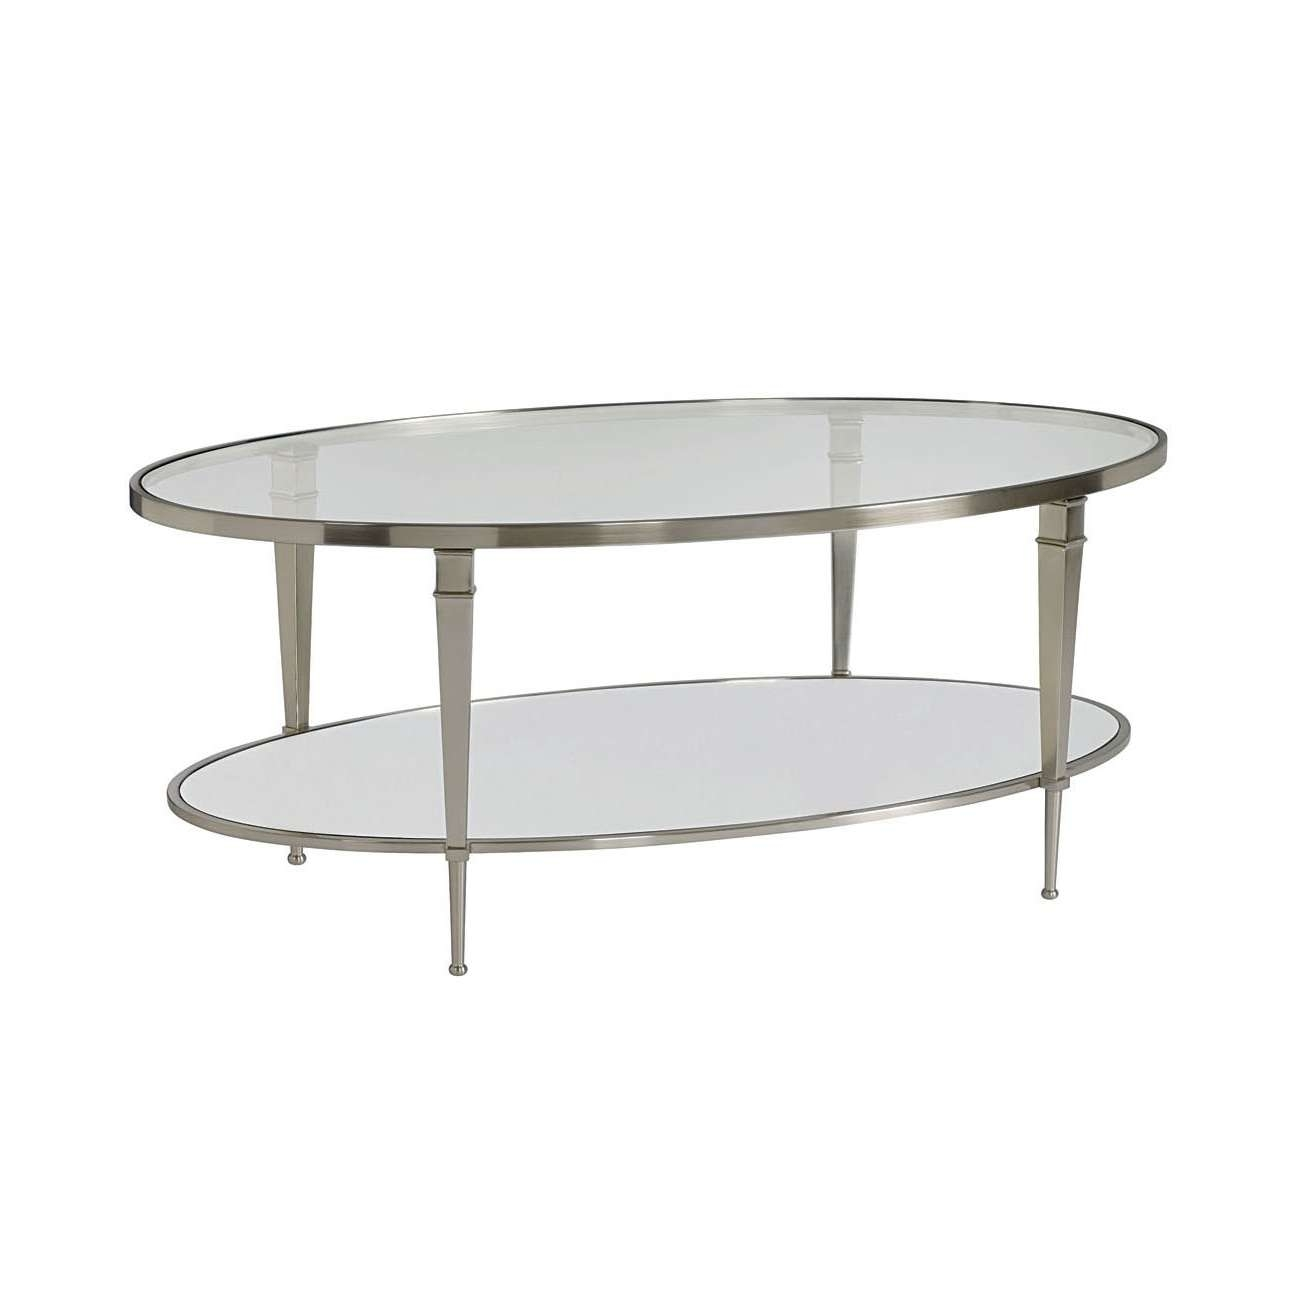 Hammary 173 912 Mallory Oval Cocktail Table In Satin Nickel For Recent Vintage Mirror Coffee Tables (Gallery 12 of 20)